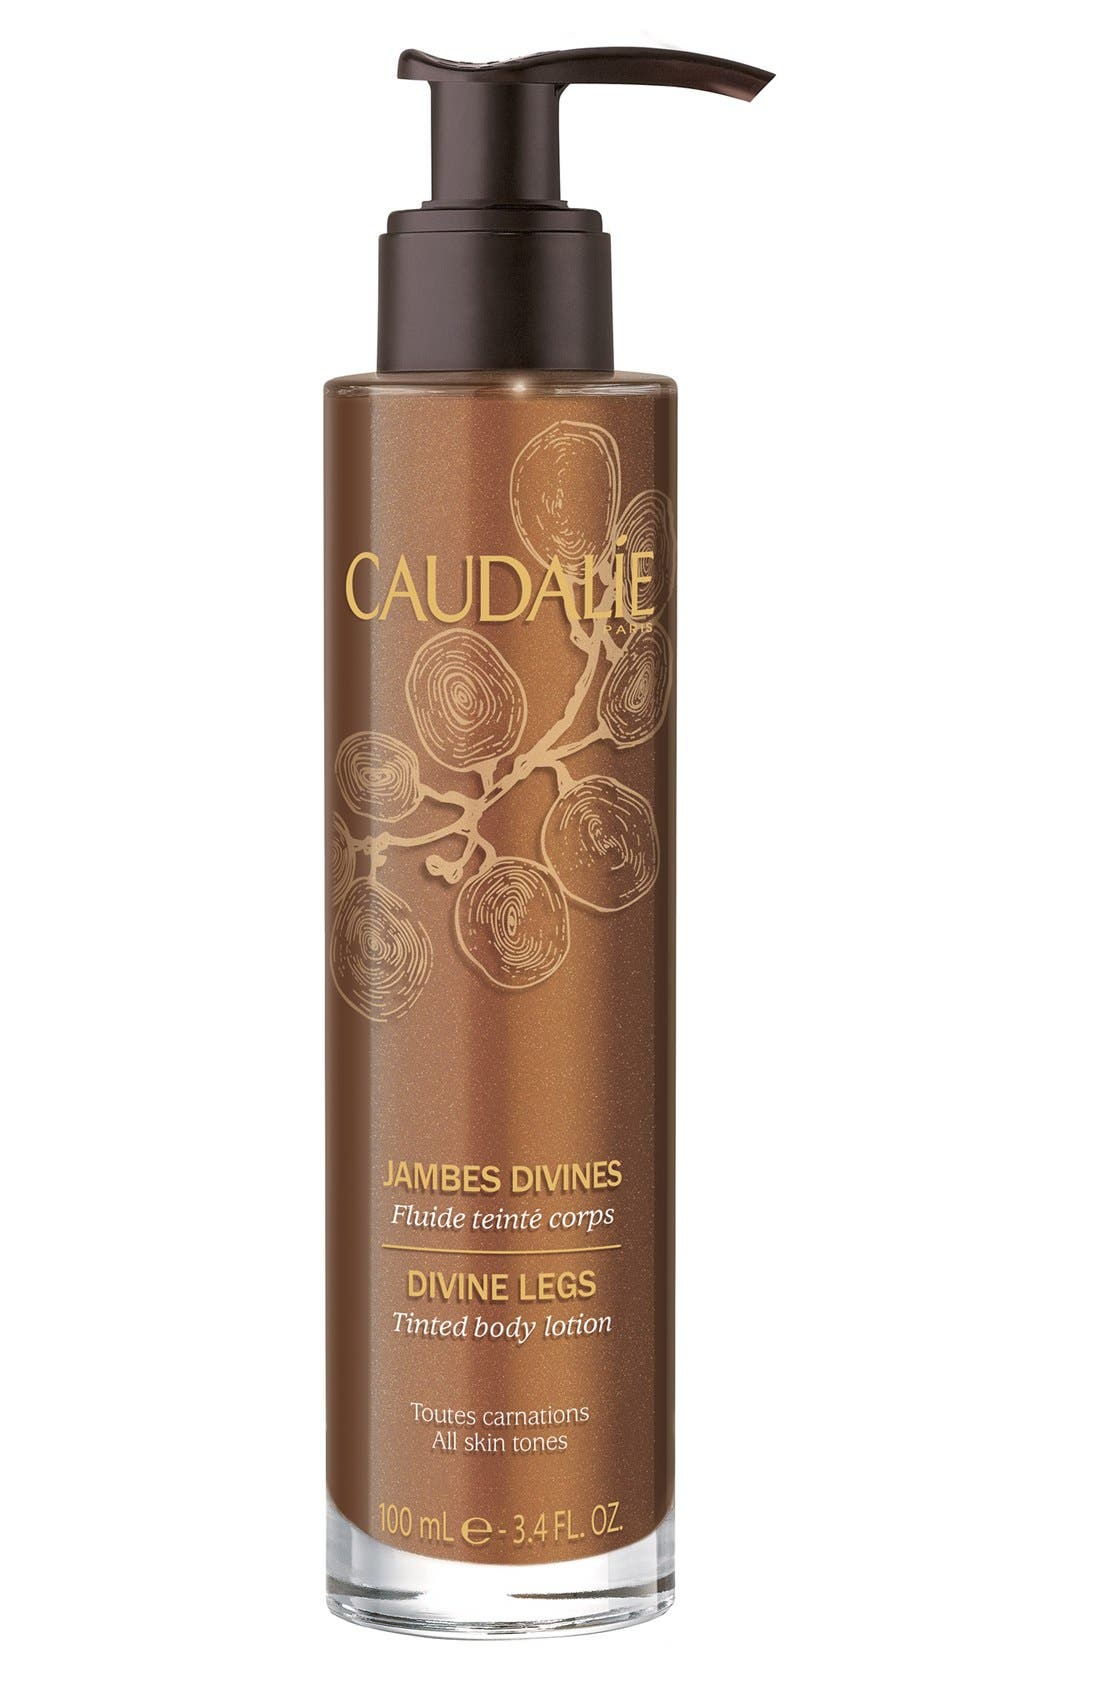 CAUDALÍE Divine Leg Tinted Body Lotion